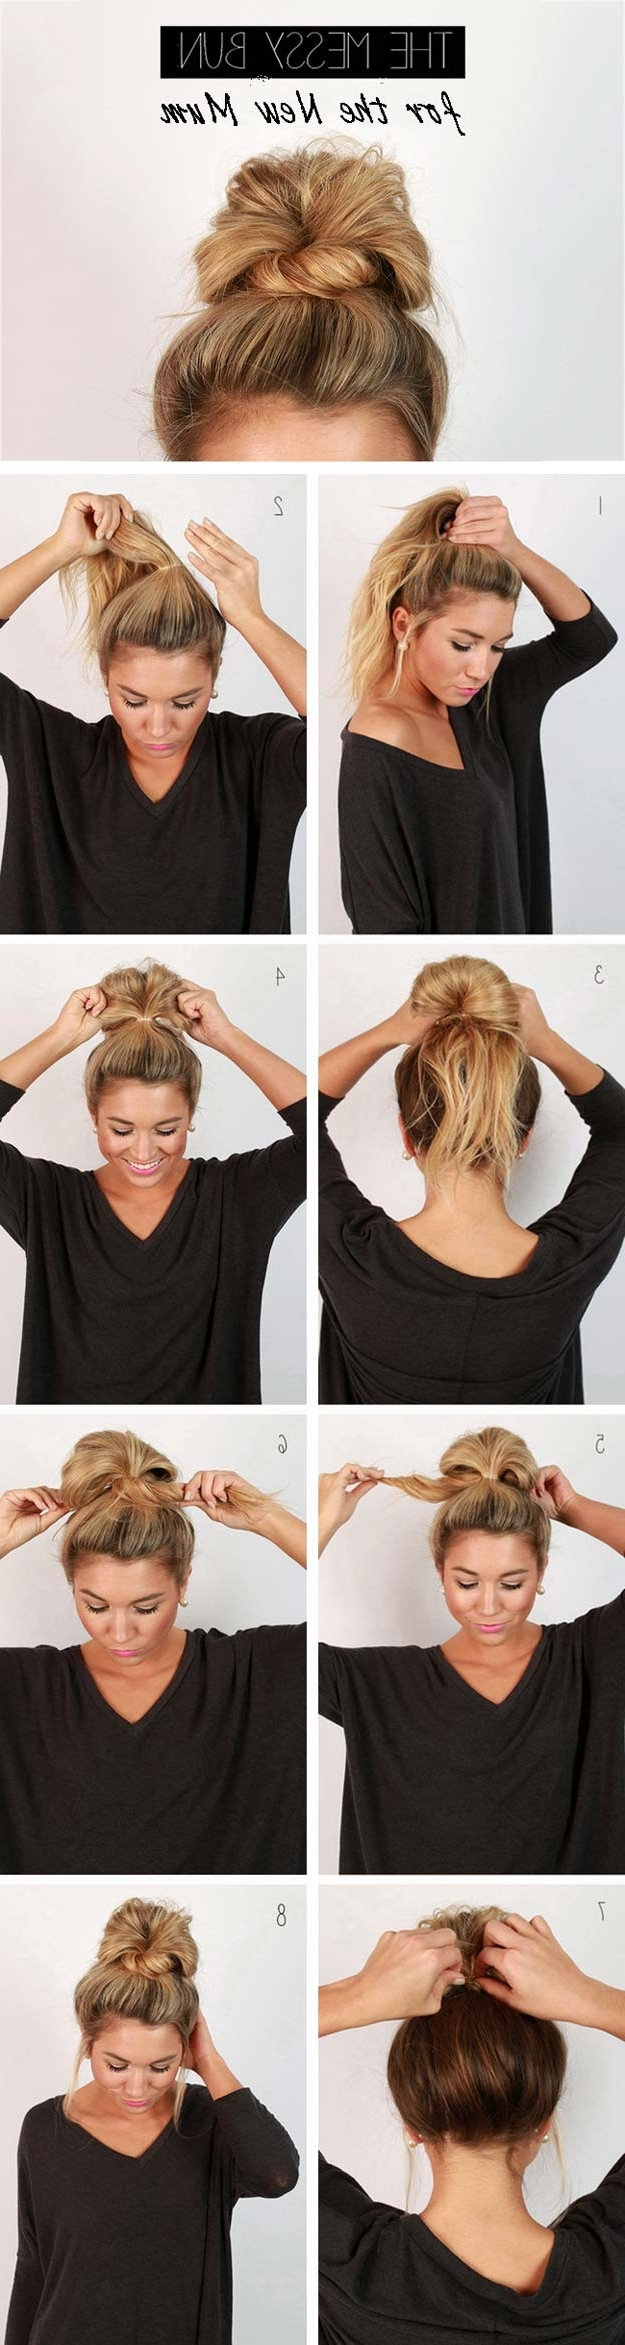 41 Diy Cool Easy Hairstyles That Real People Can Actually Do At Home! With Quick Updos For Long Hair Casual (View 2 of 15)